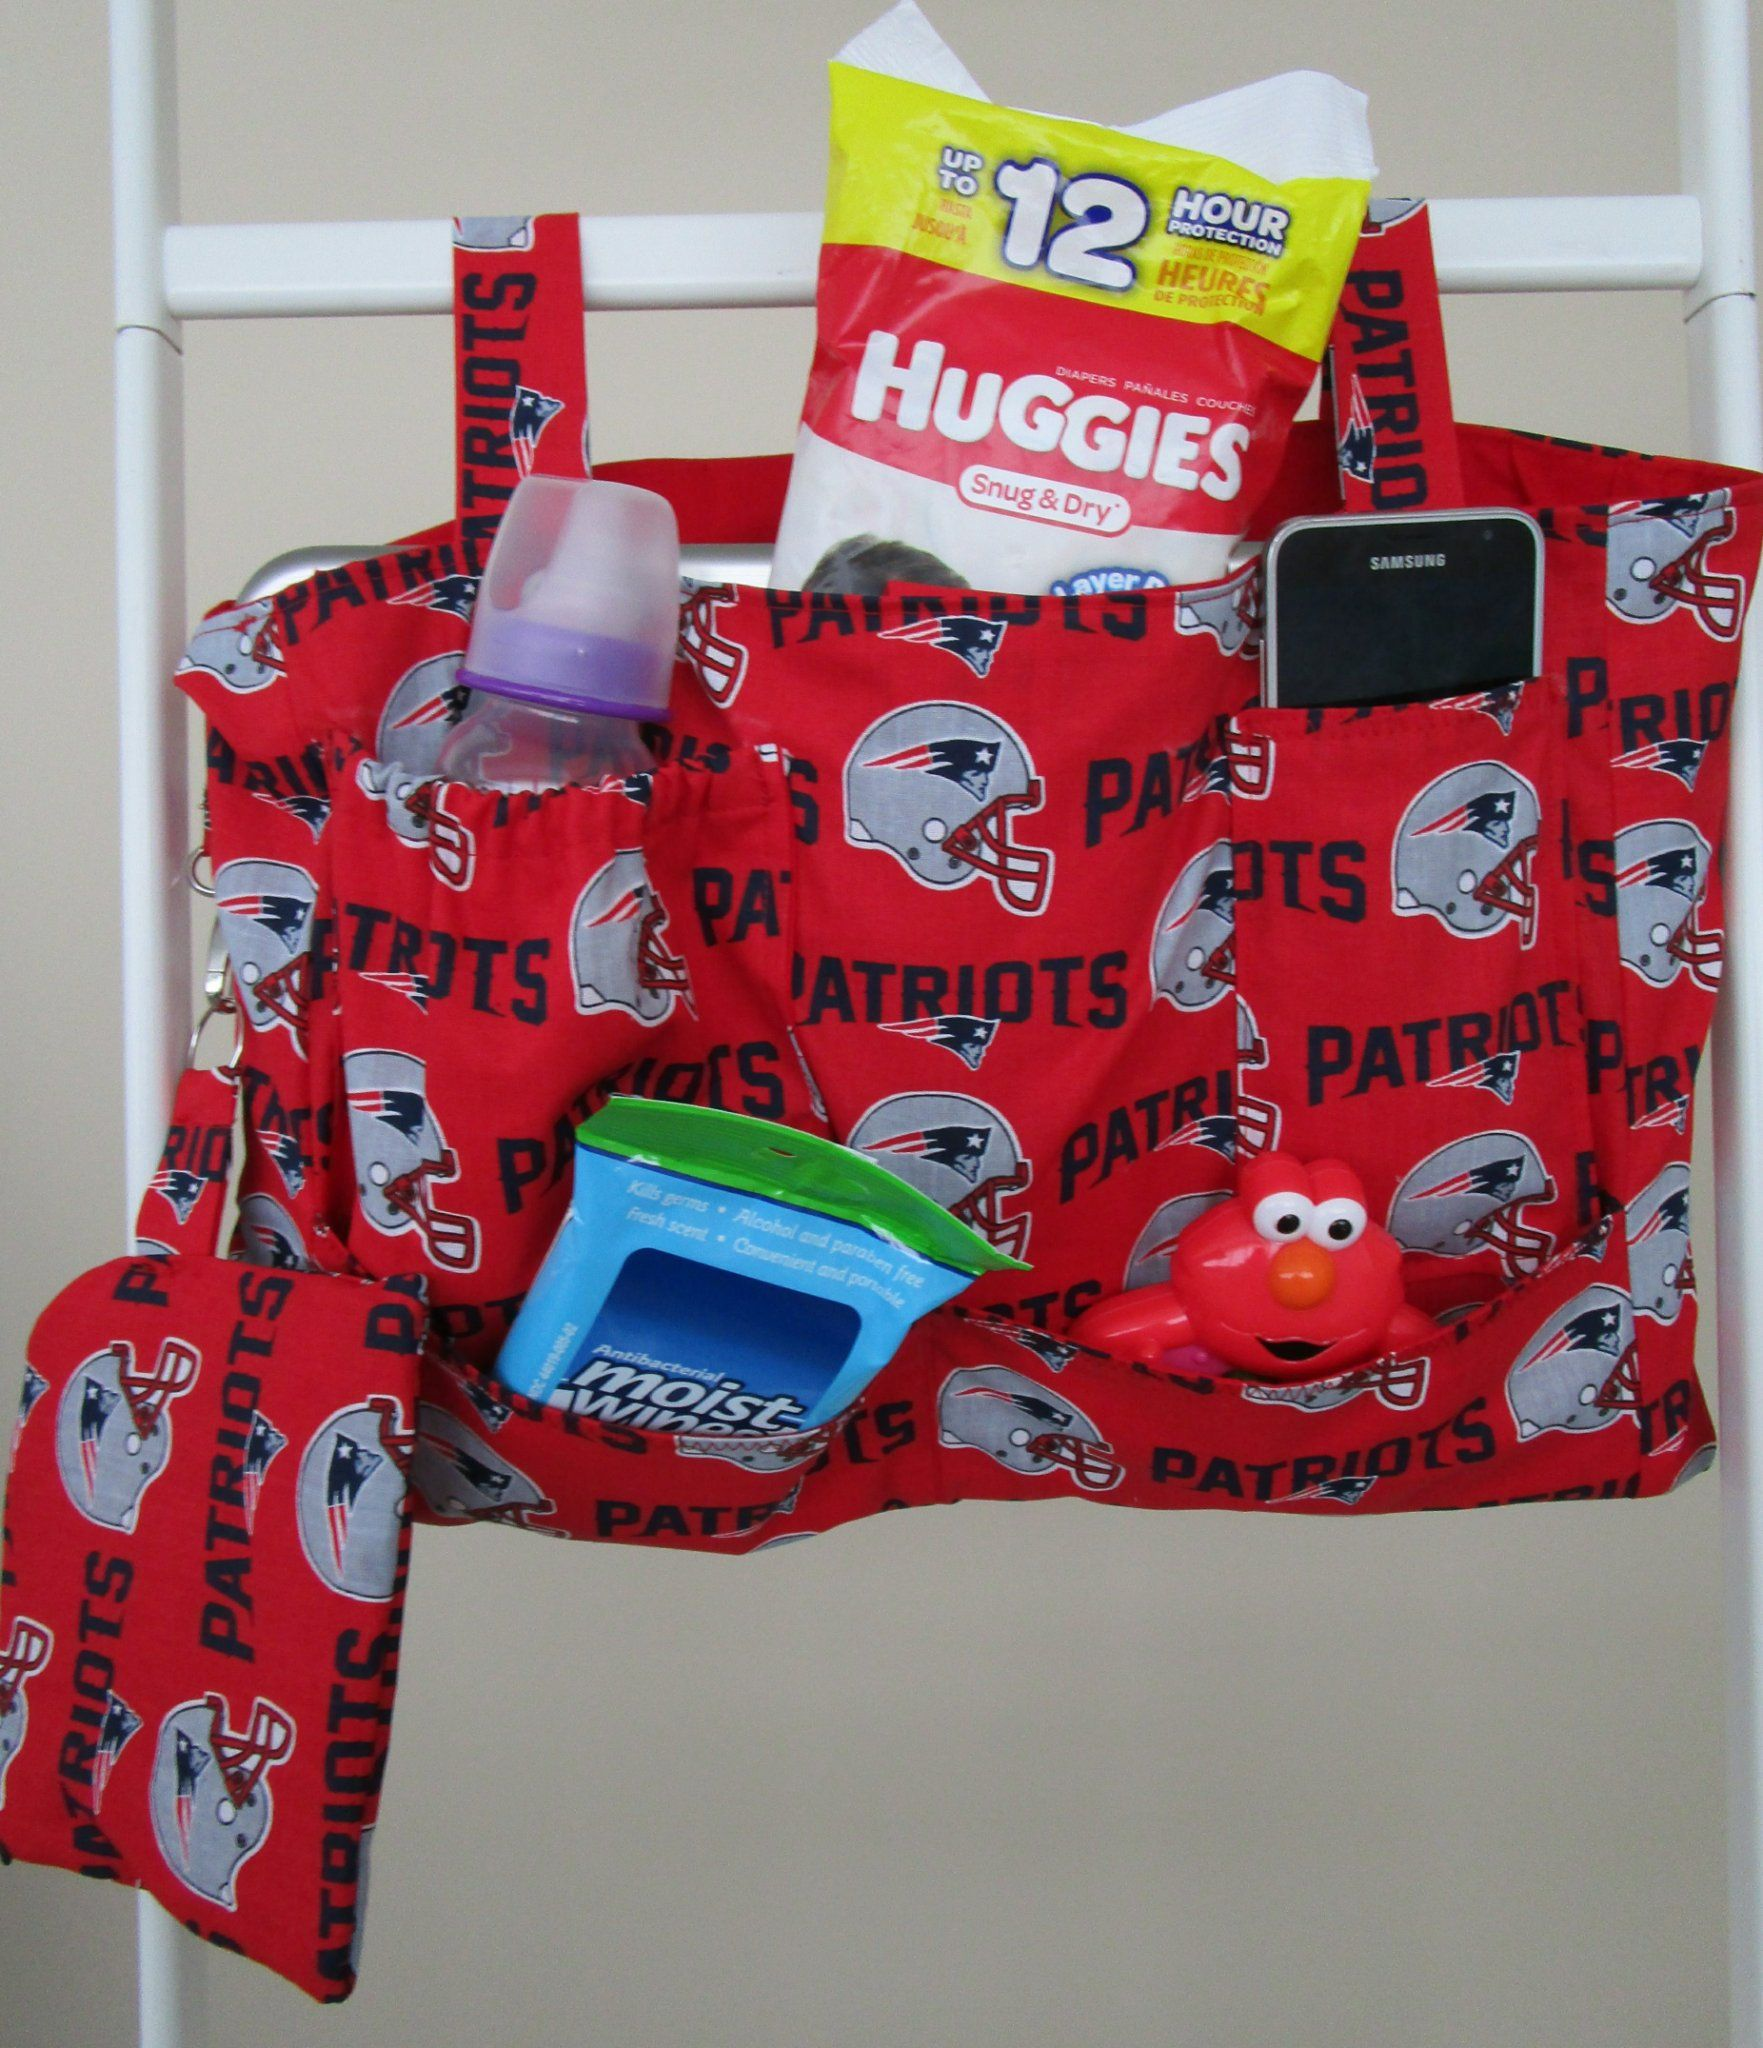 New England Patriots on Hospital Bed Organizer/Walker Tote